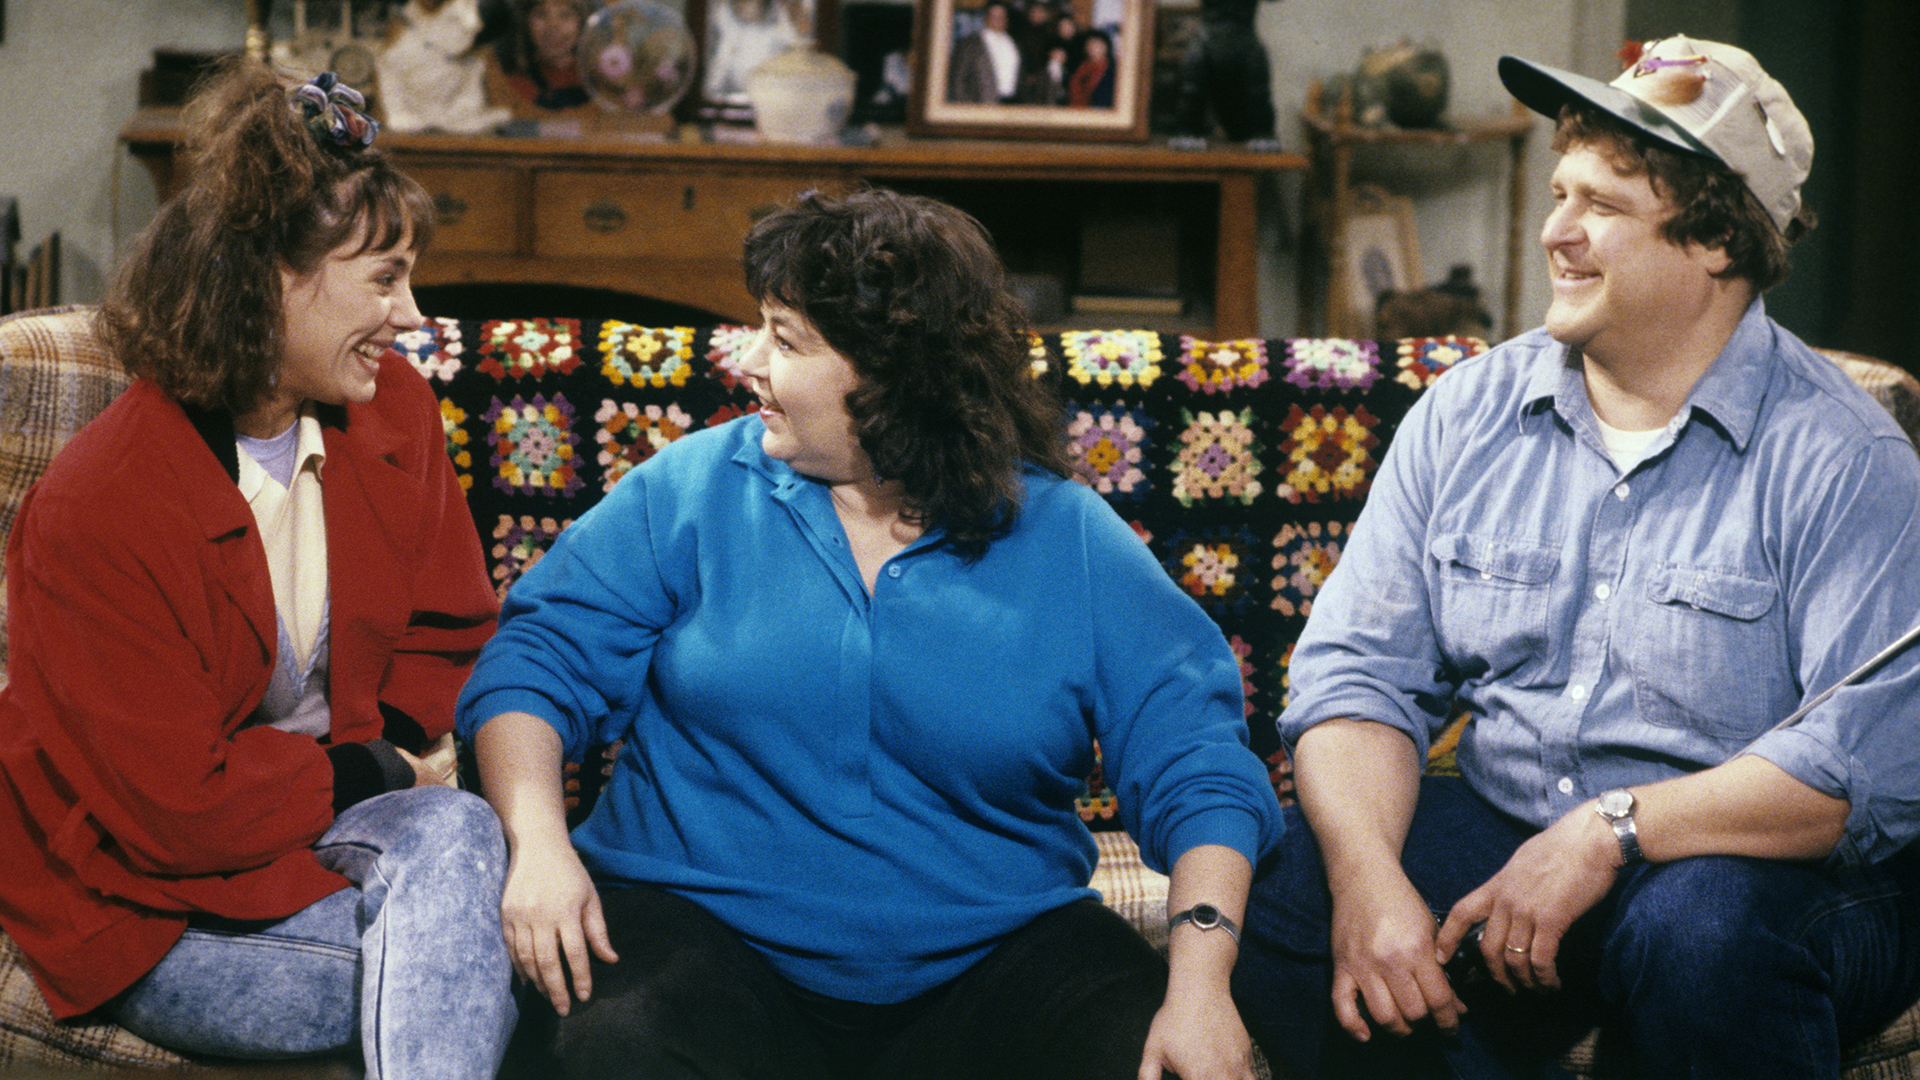 Roseanne Barr 'so sick' over John Goodman and Laurie Metcalf